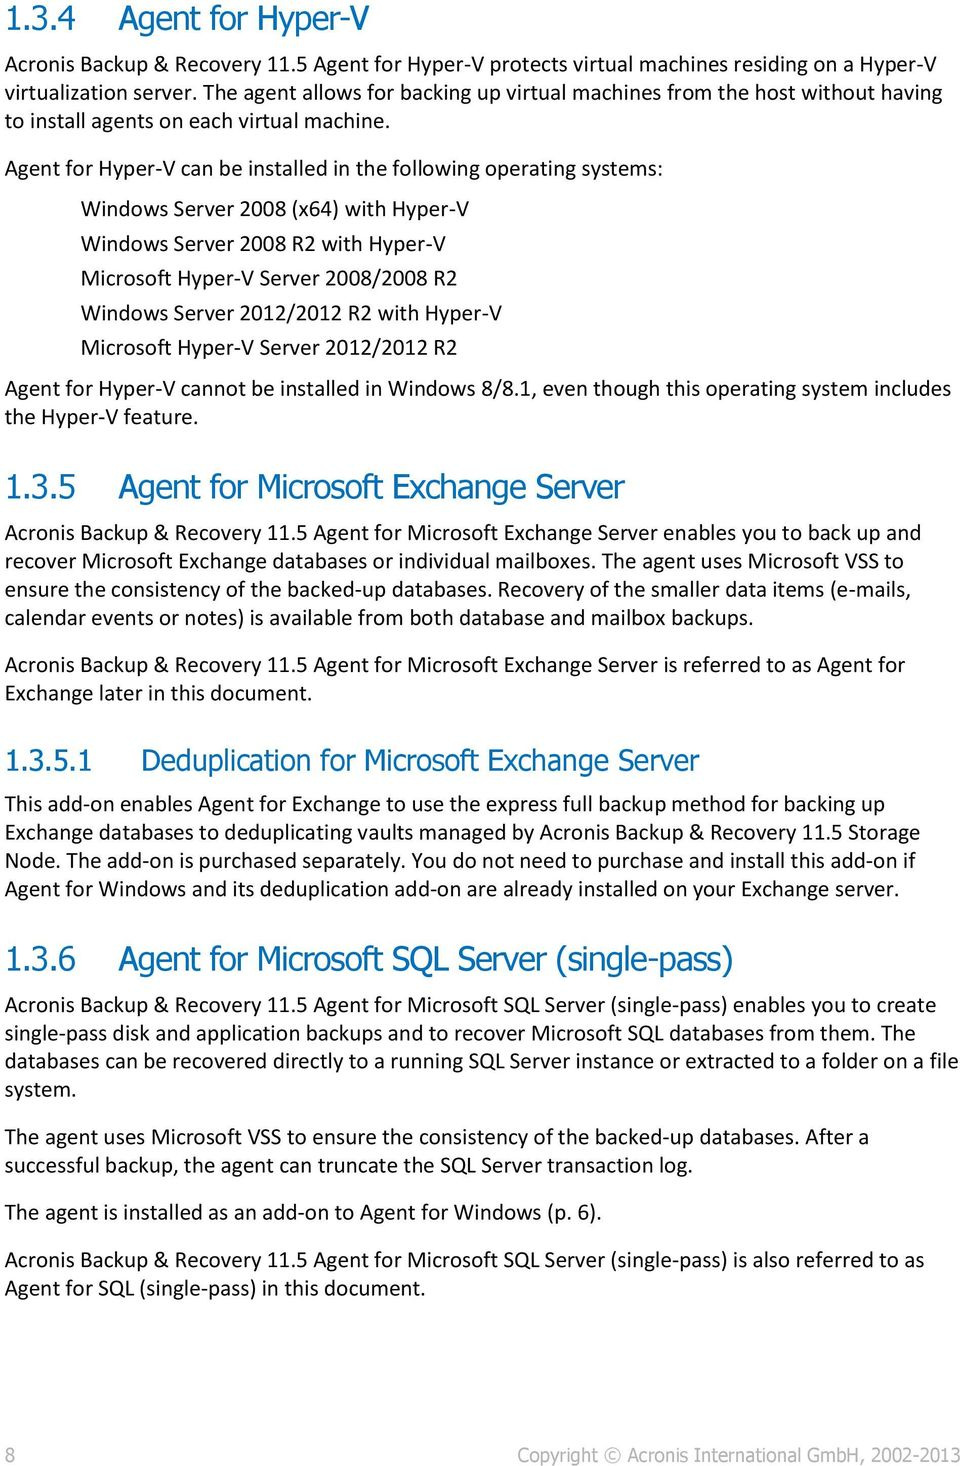 Agent for Hyper-V can be installed in the following operating systems: Windows Server 2008 (x64) with Hyper-V Windows Server 2008 R2 with Hyper-V Microsoft Hyper-V Server 2008/2008 R2 Windows Server